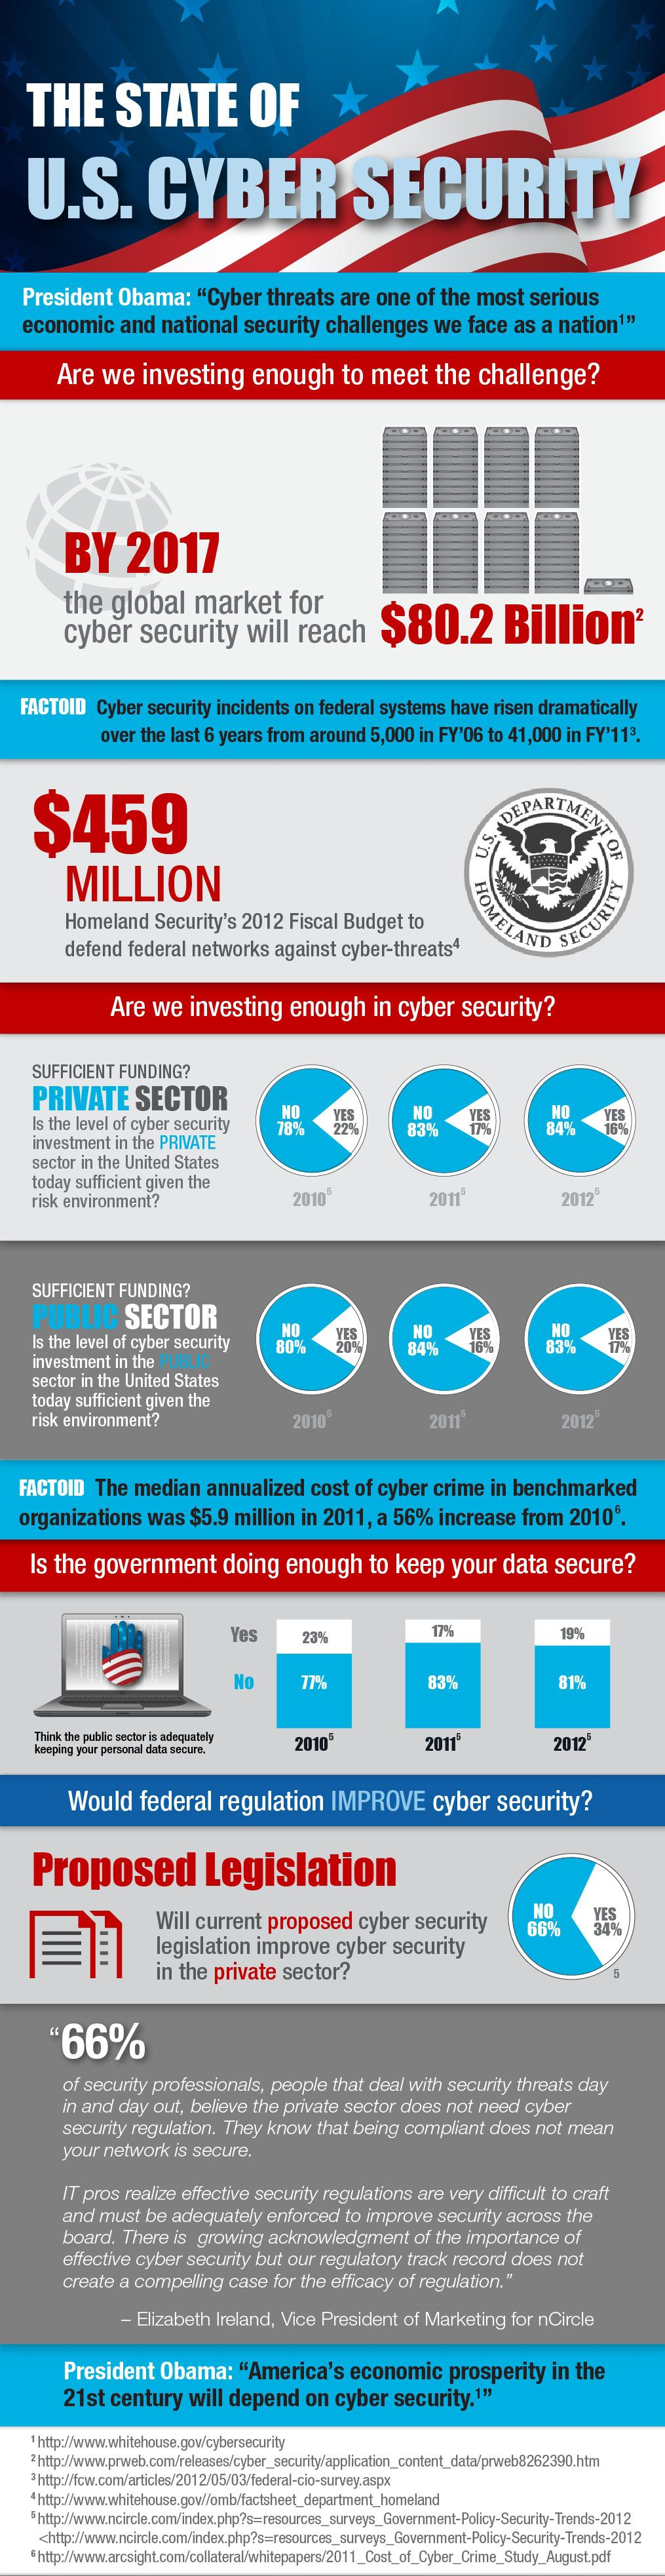 cyber-security-state